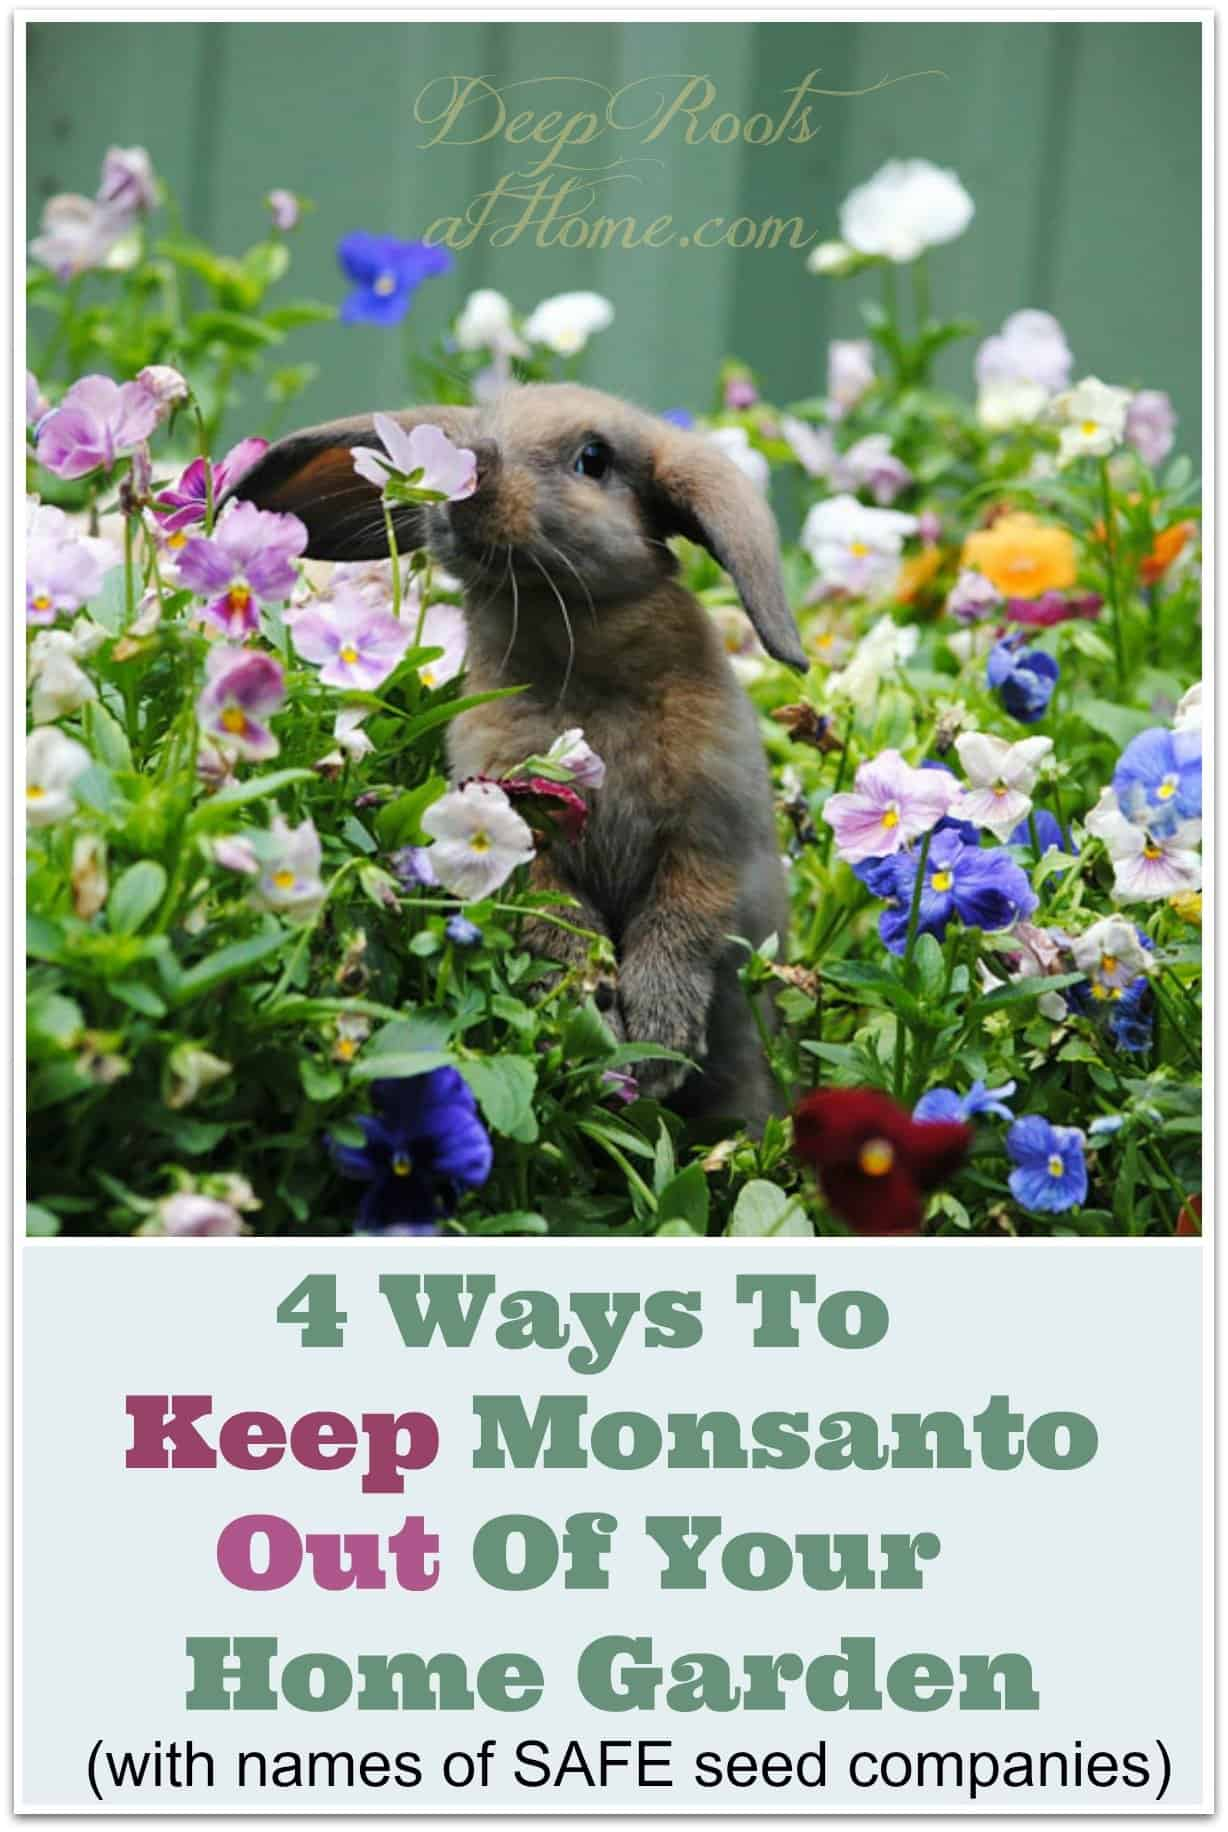 4 Ways To Keep Monsanto Out Of Your Home Garden. A bunny smelling a pansy flower.